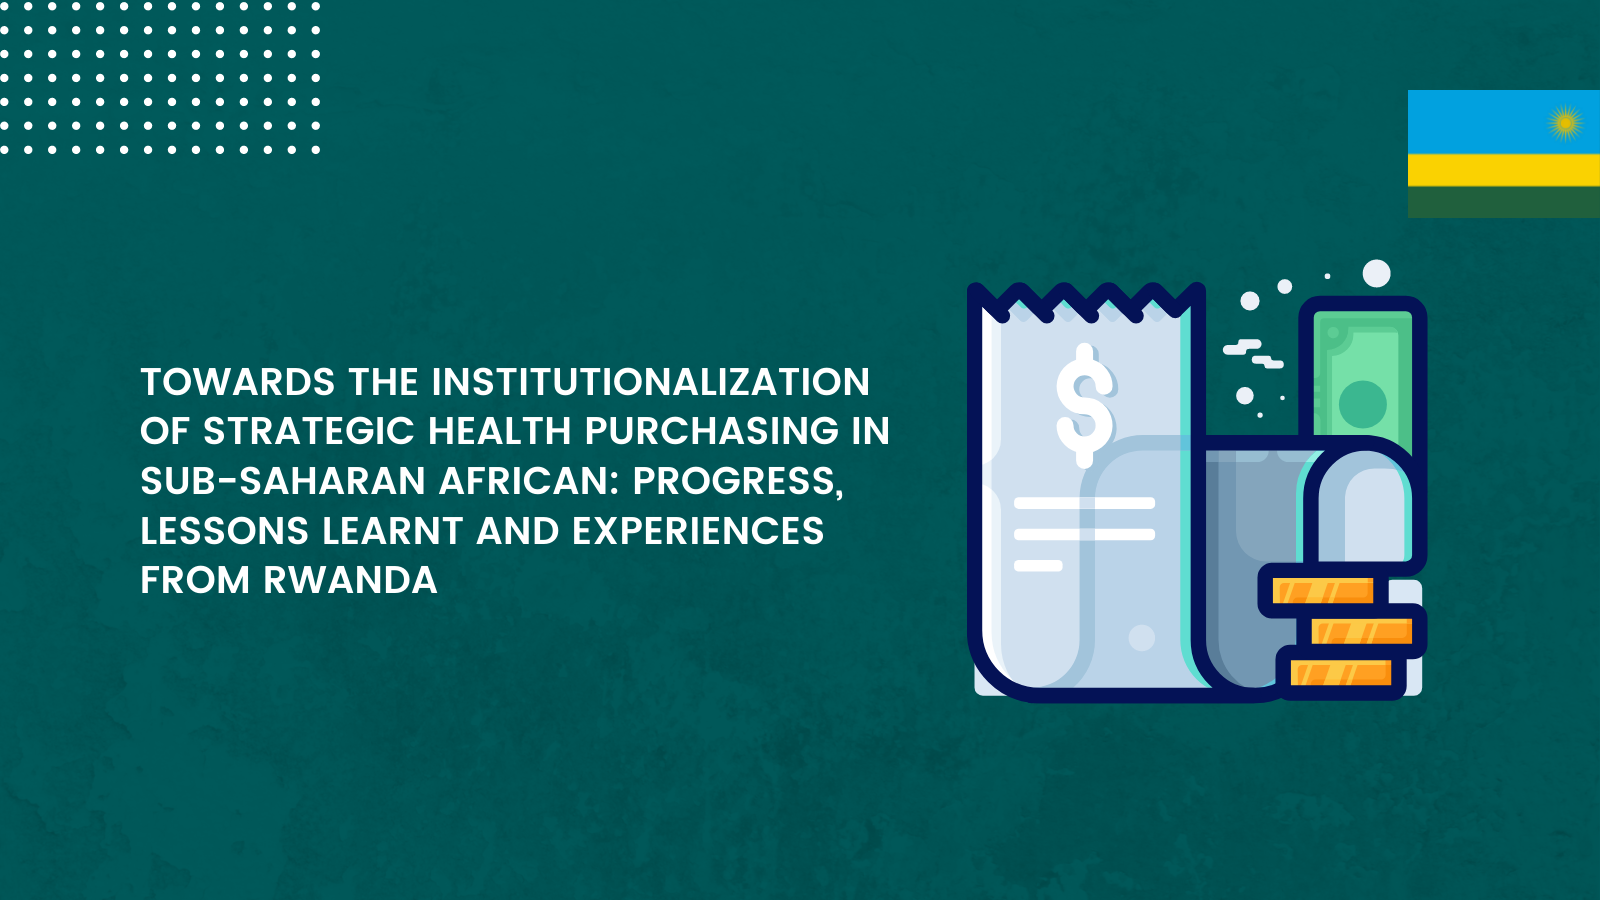 Towards The Institutionalization Of Strategic Health Purchasing In Sub-Saharan African: Progress, Lessons Learnt And Experiences From Rwanda